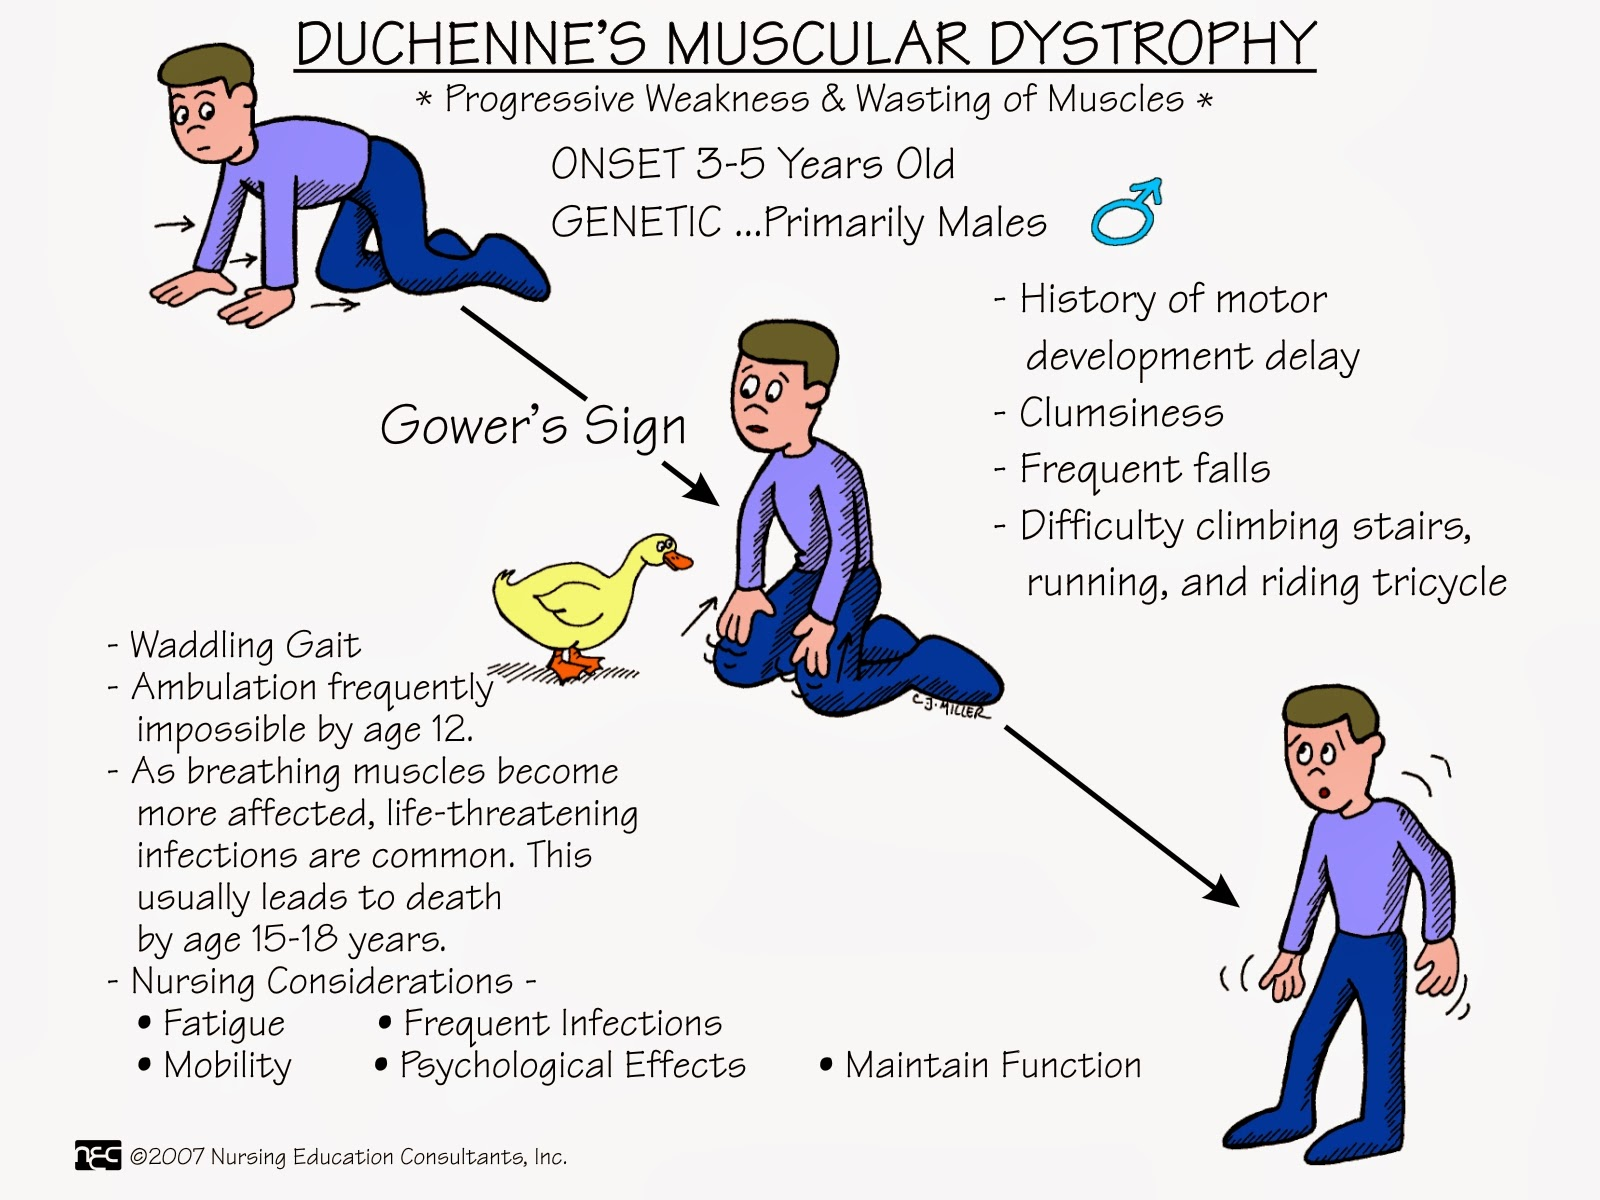 Duchenne Muscular Dystrophy Symptoms Management And Prognosis Nurses Notes Ms Nursing Mnemonics